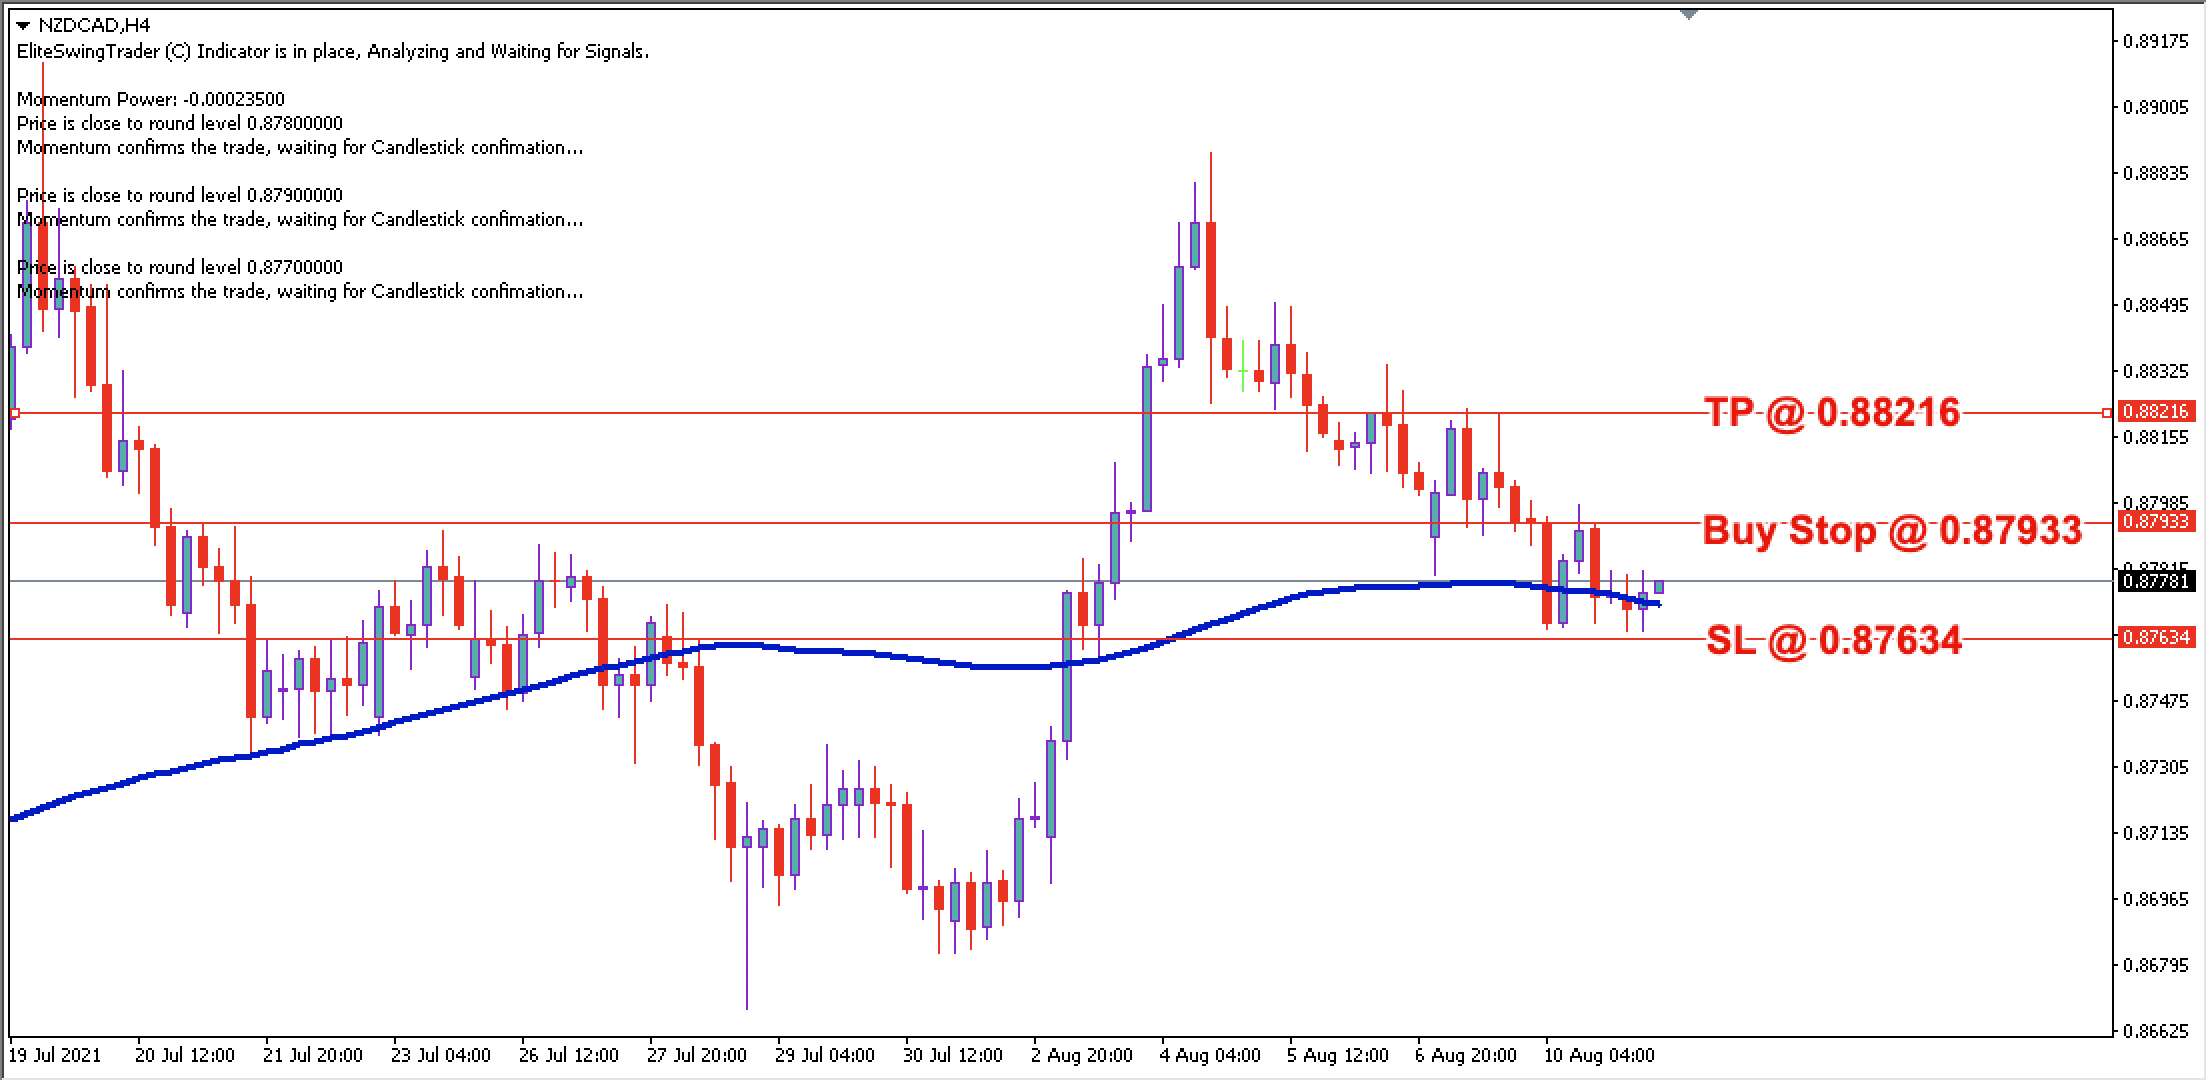 NZD/CAD Daily Price Forecast – 11th August 2021